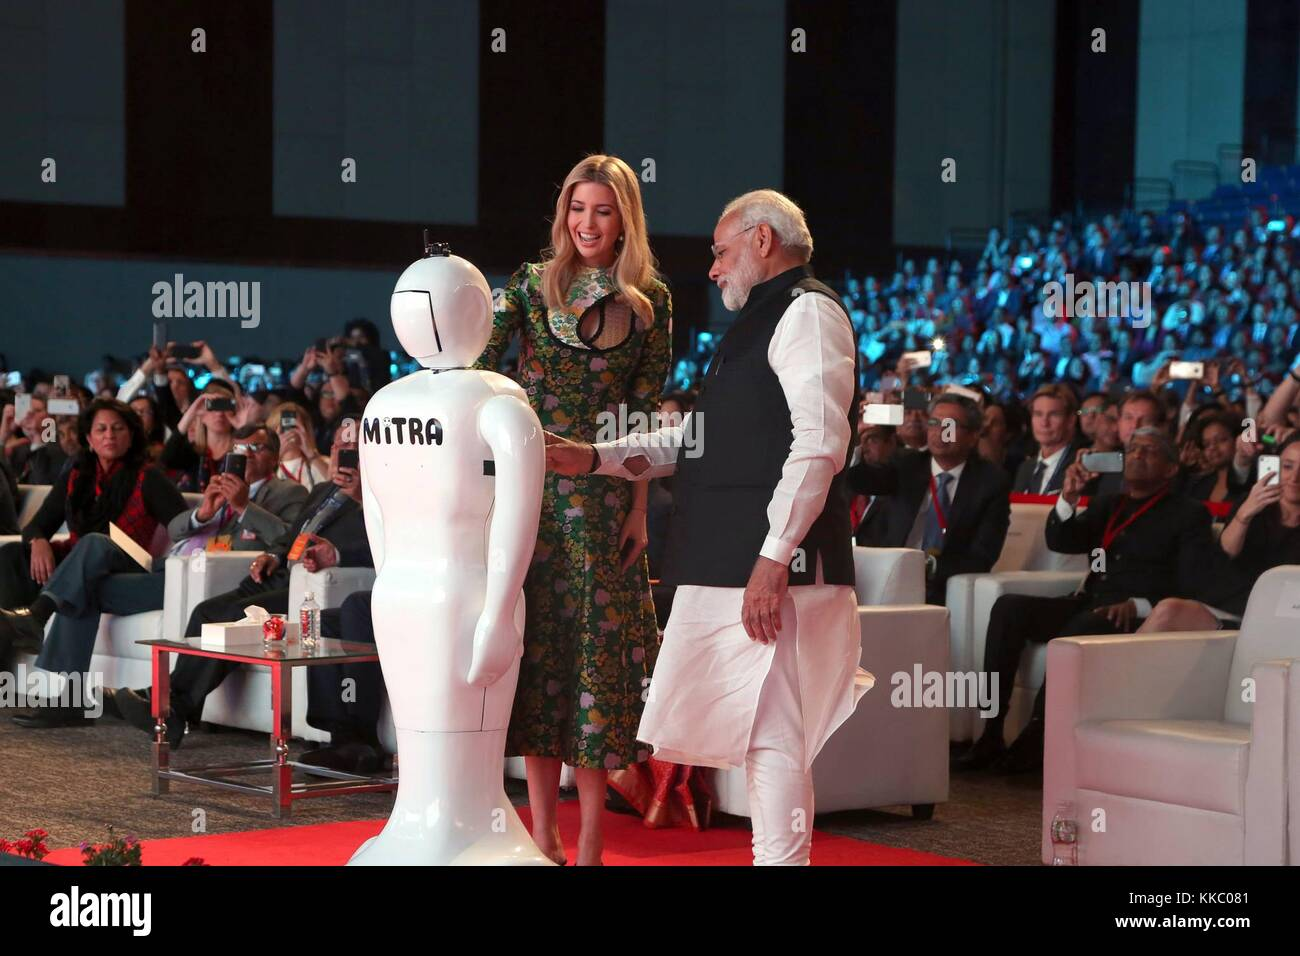 Indian Prime Minister Narendra Modi, right, introduces Ivanka Trump, daughter of U.S. President Donald Trump, to - Stock Image